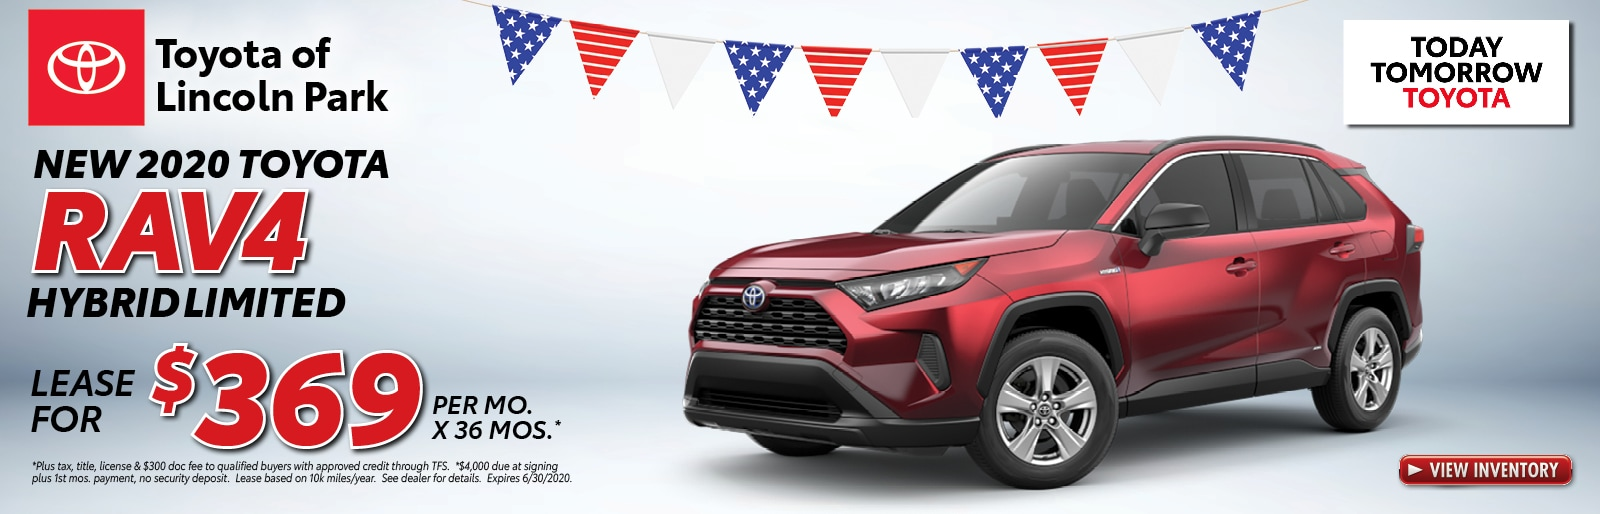 Lease a 2020 RAV4 Hybrid XSE AWD for $289/mo. x 36 mos.